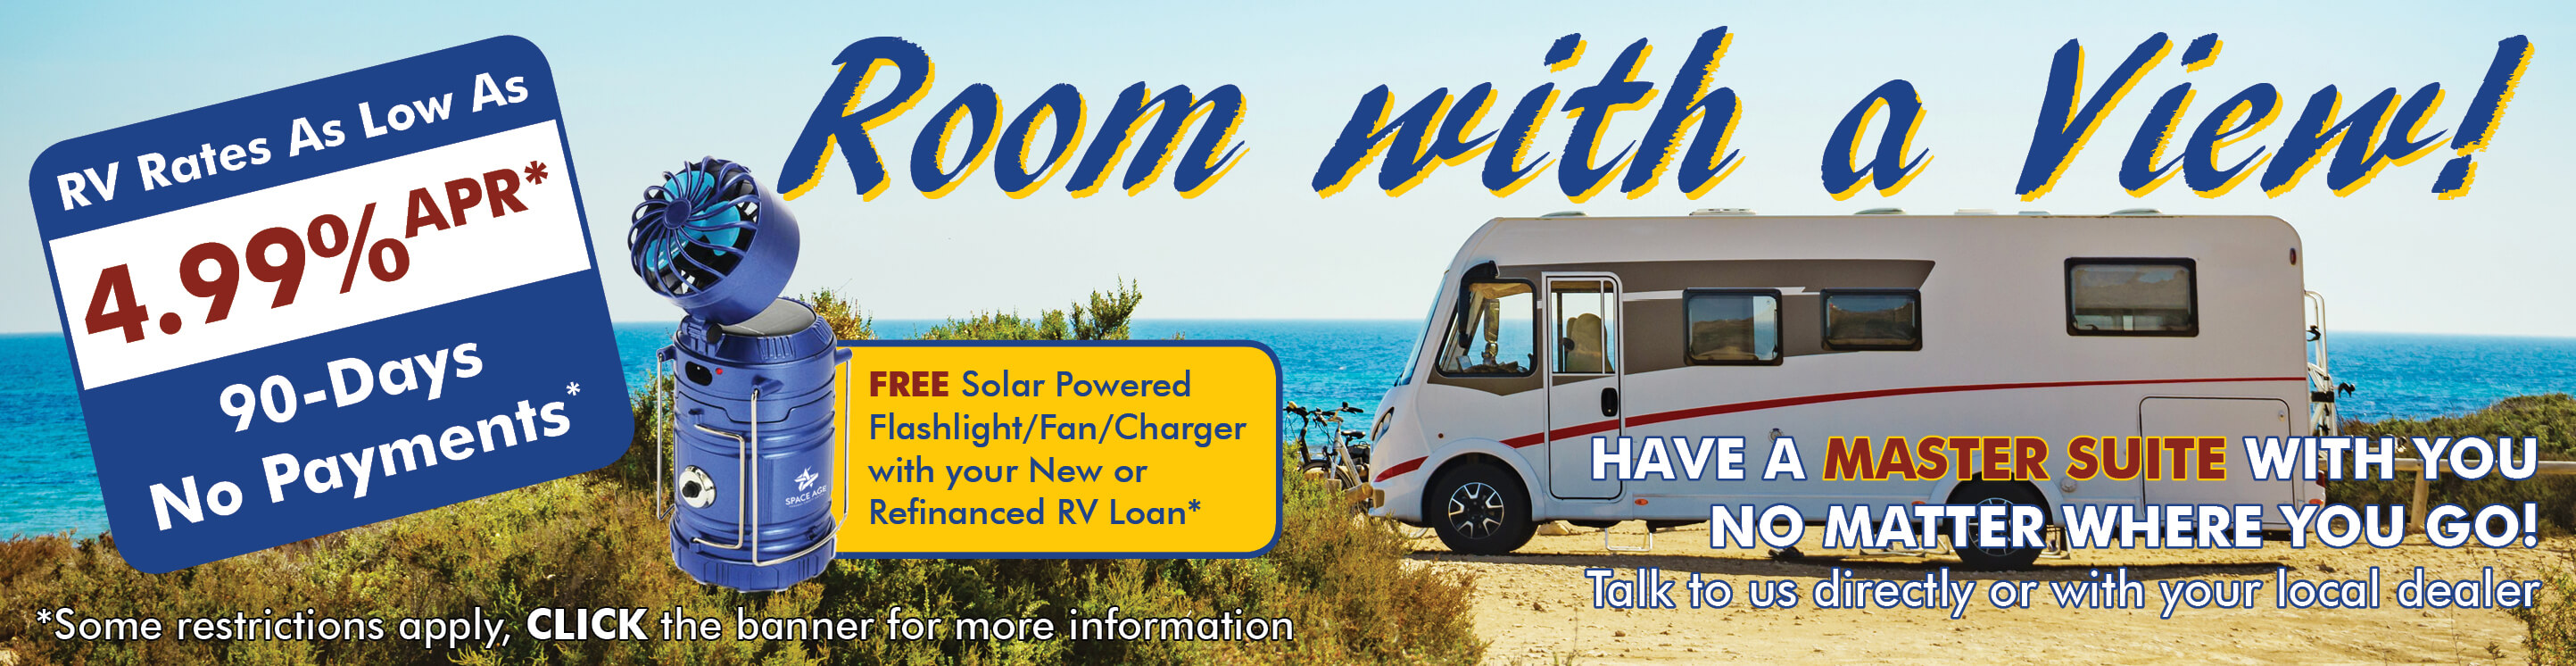 The Banner shows a RV on a beach with a beautiful view of the ocean. The Text says, Room with a View! Have a Master Suite with you no matter where you go! Talk to us directly  or with your local dealer. Rates as low as 4.99% APR with 90-Days no payments.